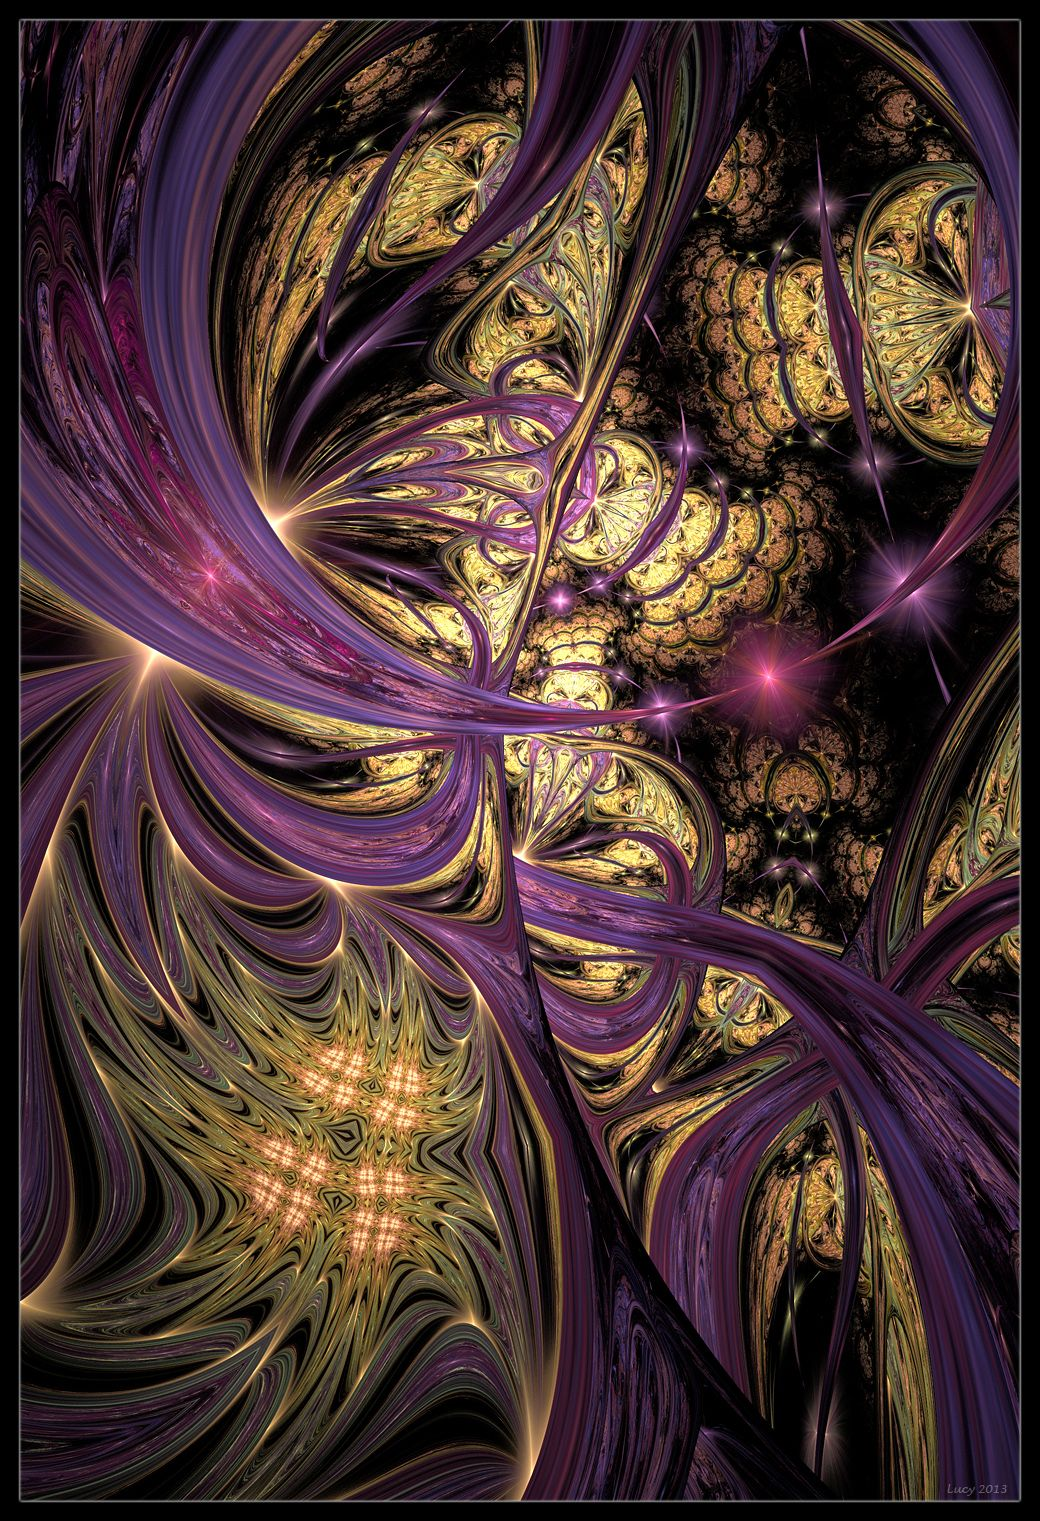 Alternative ways by loony lucy a fractal art pinterest apophysis photoshop for some adjustments made with the help of plangkyes tutorial link alternative ways baditri Gallery